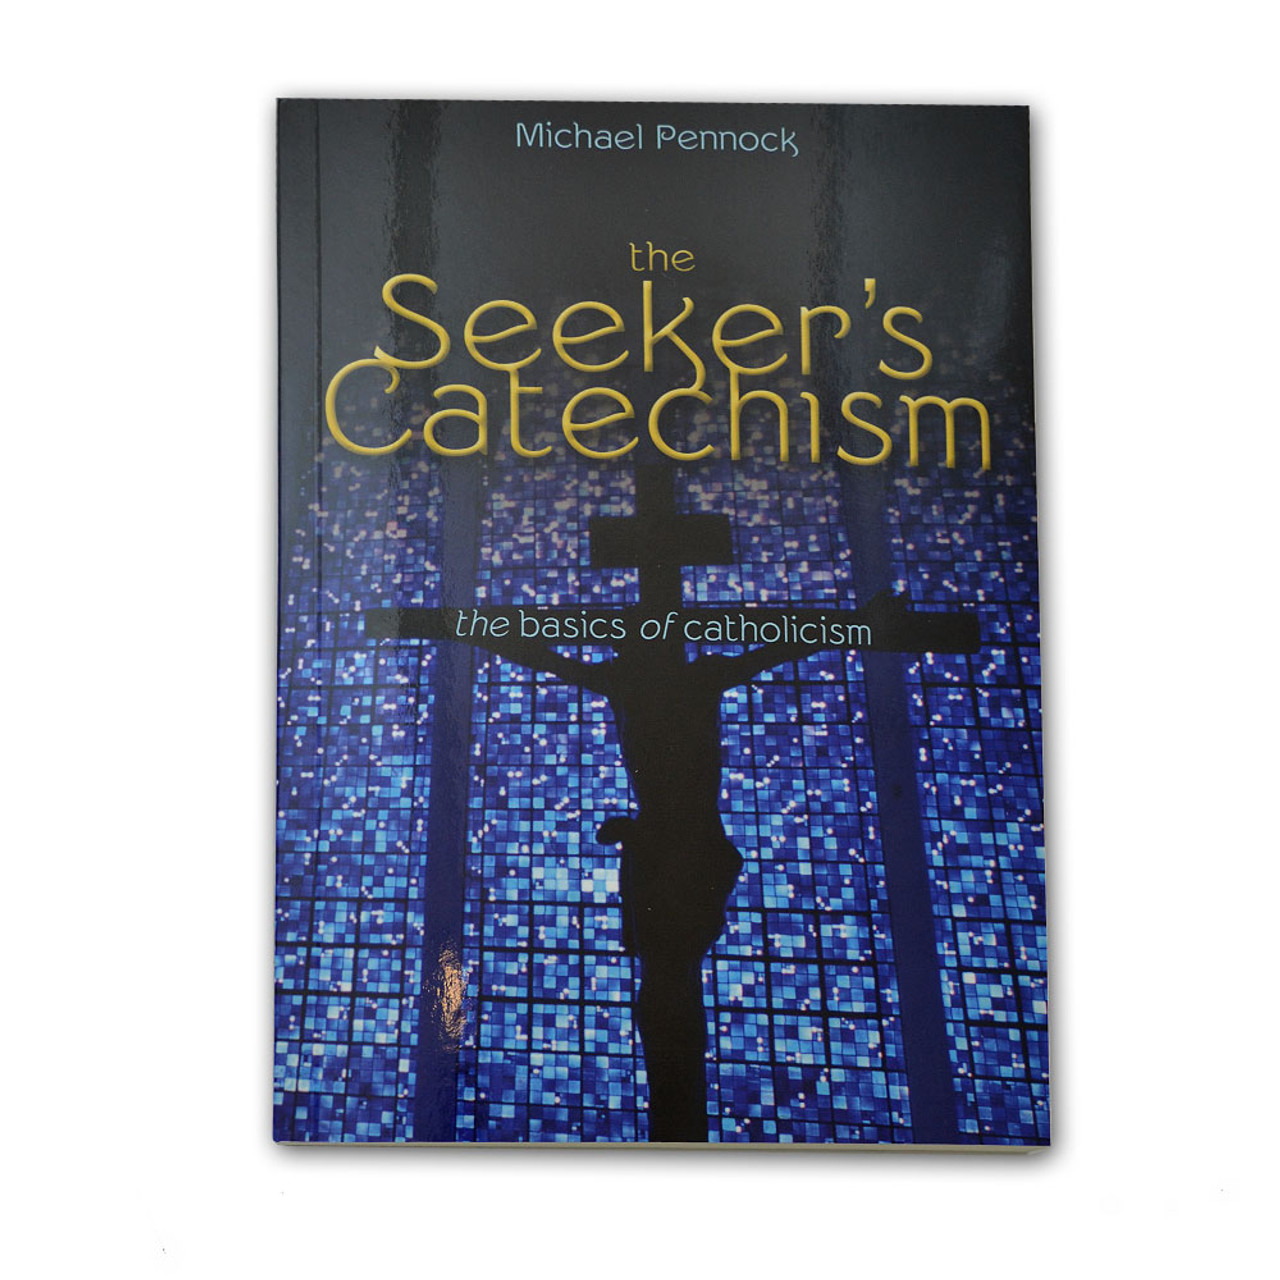 The Seeker's Catechism  Pennock, Michael Francis